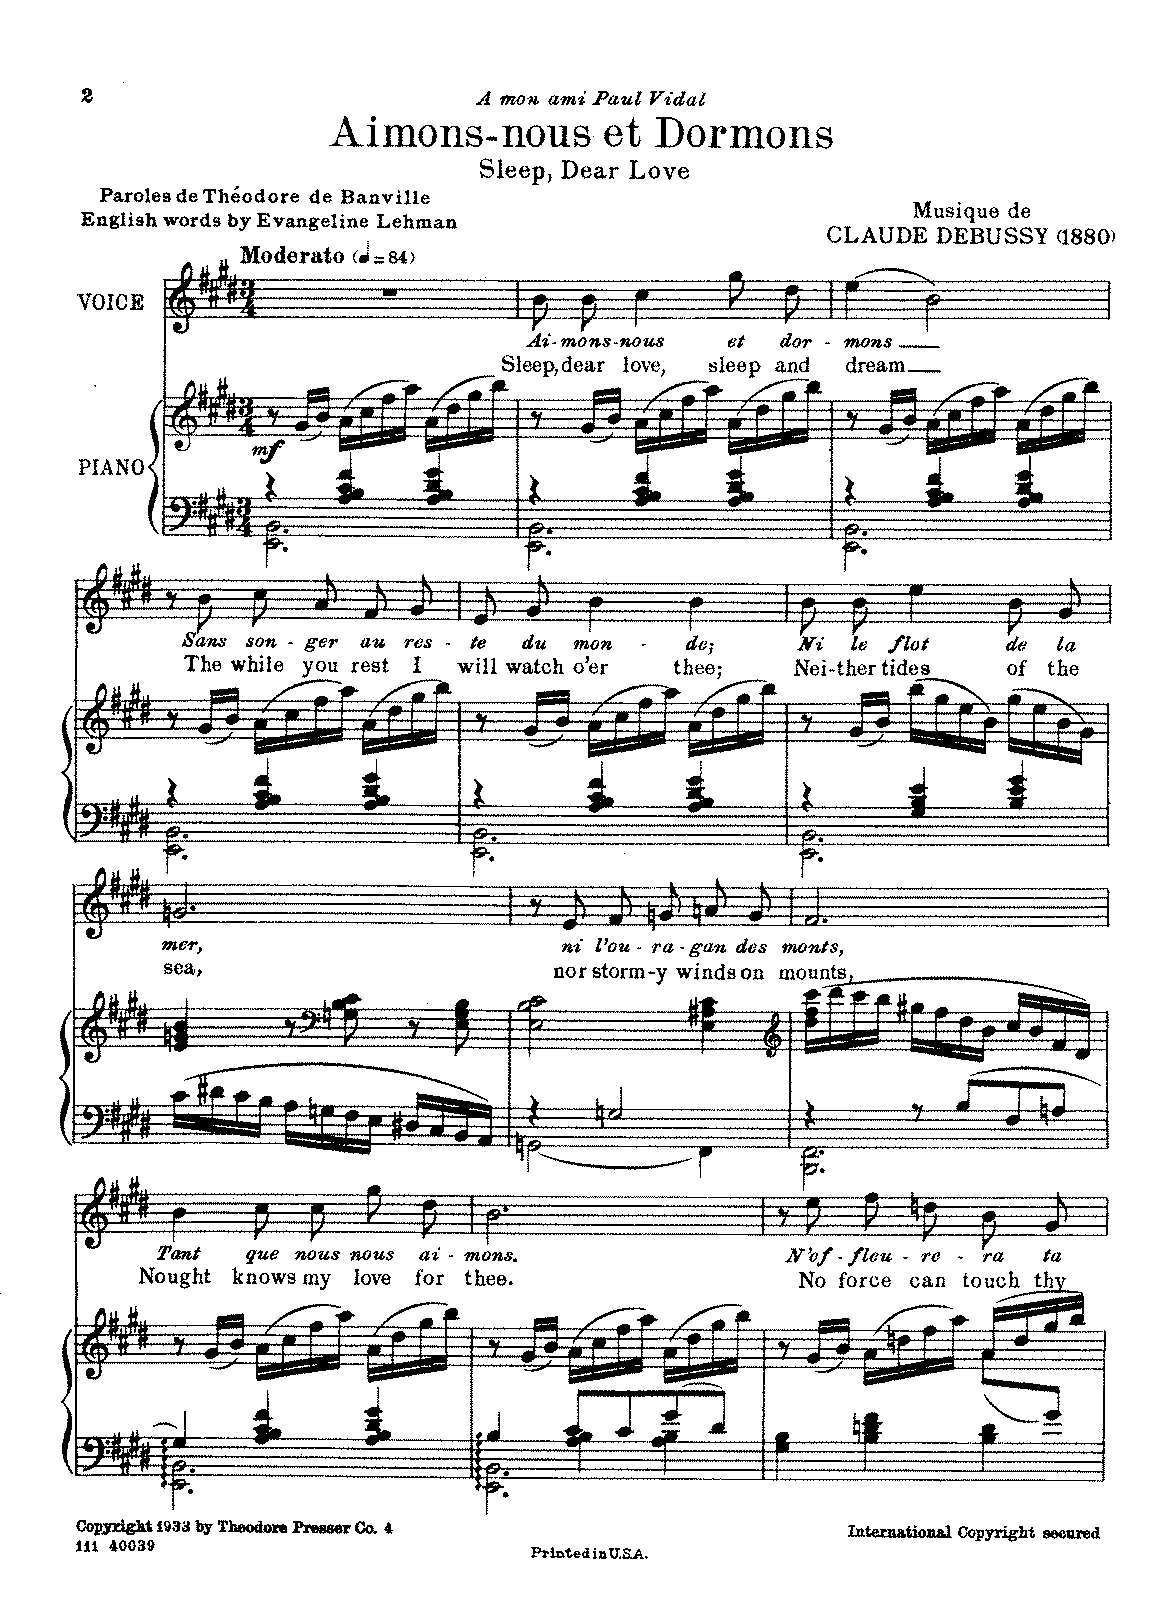 Debussy - Aimons-nous et Dormons (voice and piano).pdf